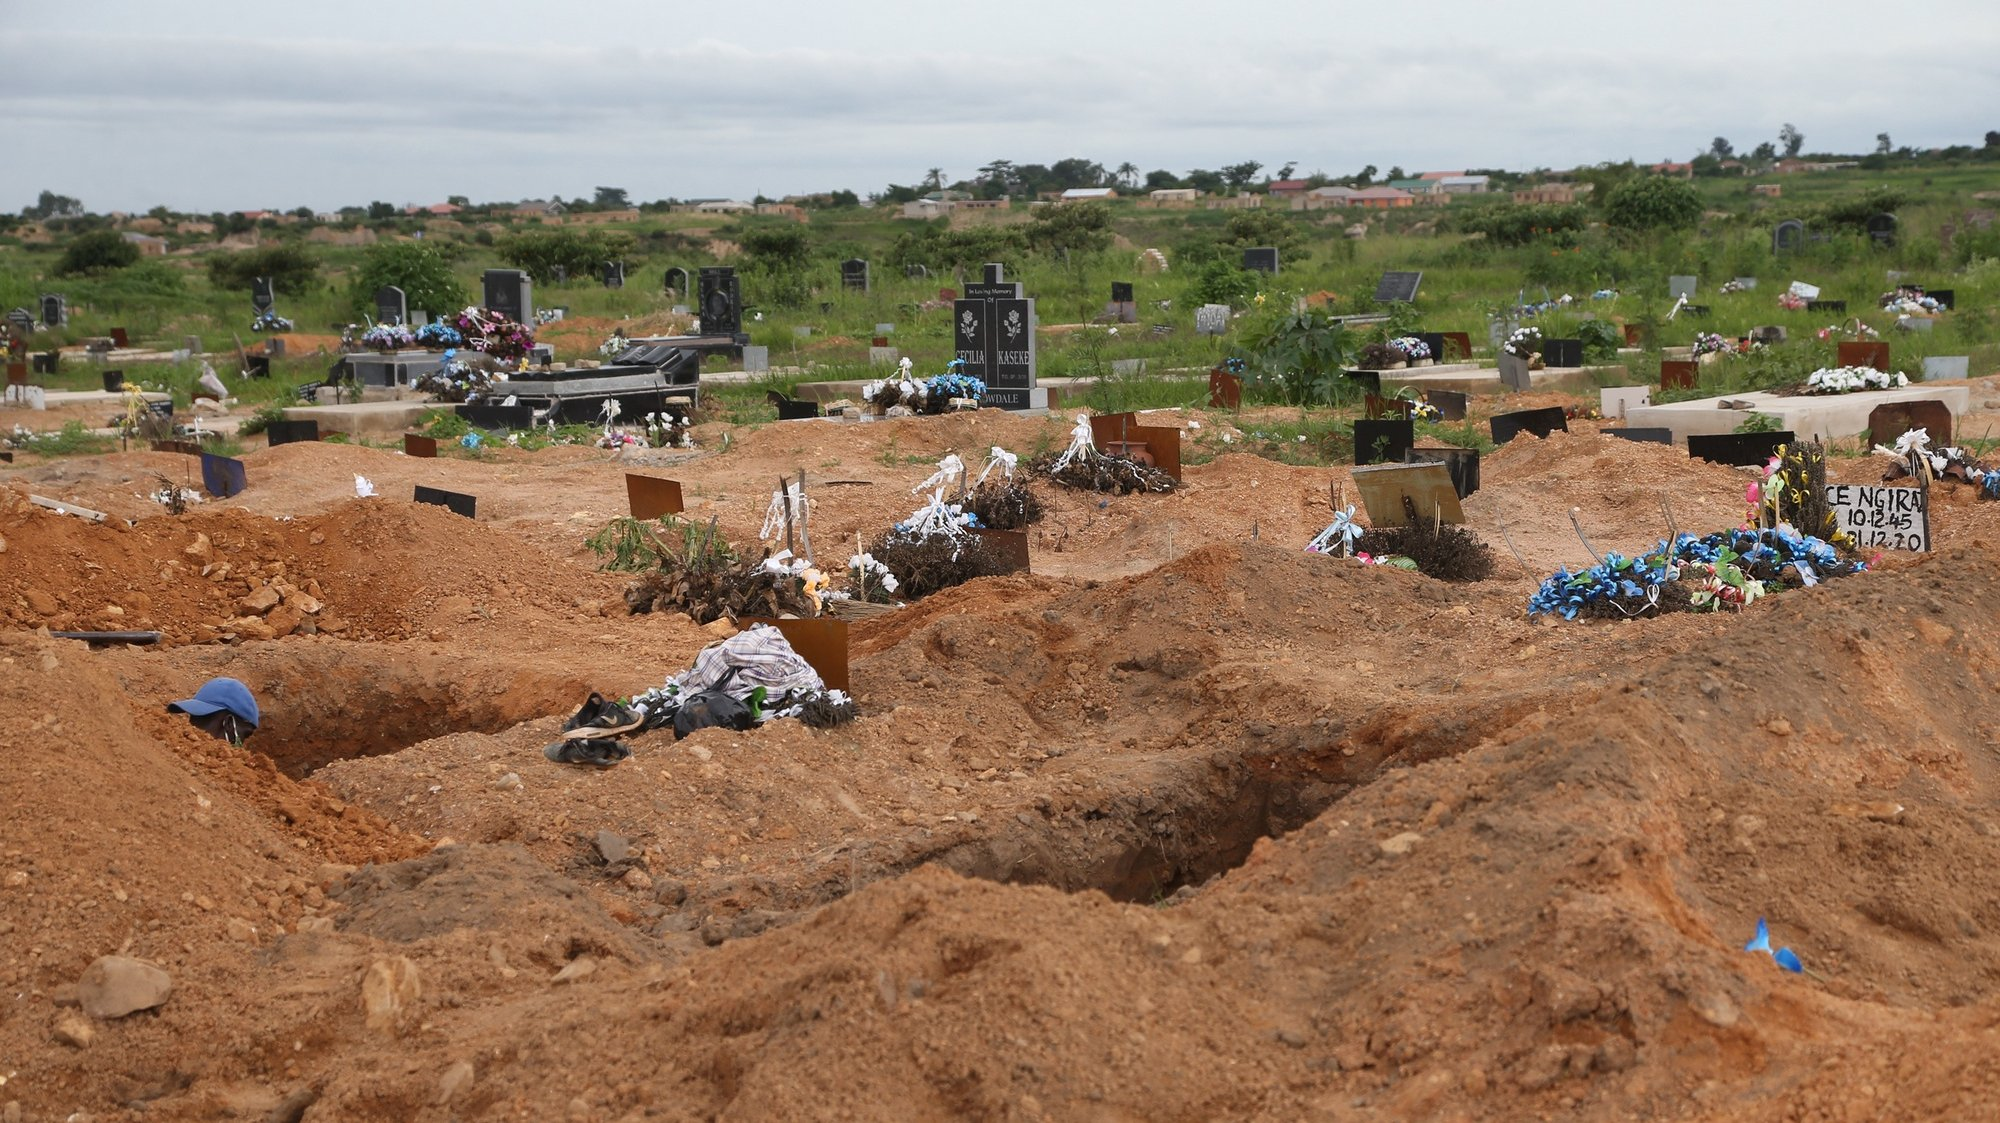 epa08946459 Freshly dug graves waiting for covid -19  victims burial at Zororo Memorial Park, in Chitungwiza, Zimbabwe, 18 January 2021. The country has seen an increase in the number of coronavirus related deaths with an average of 250 fatalities per week since December 2020.            .  EPA/AARON UFUMELI